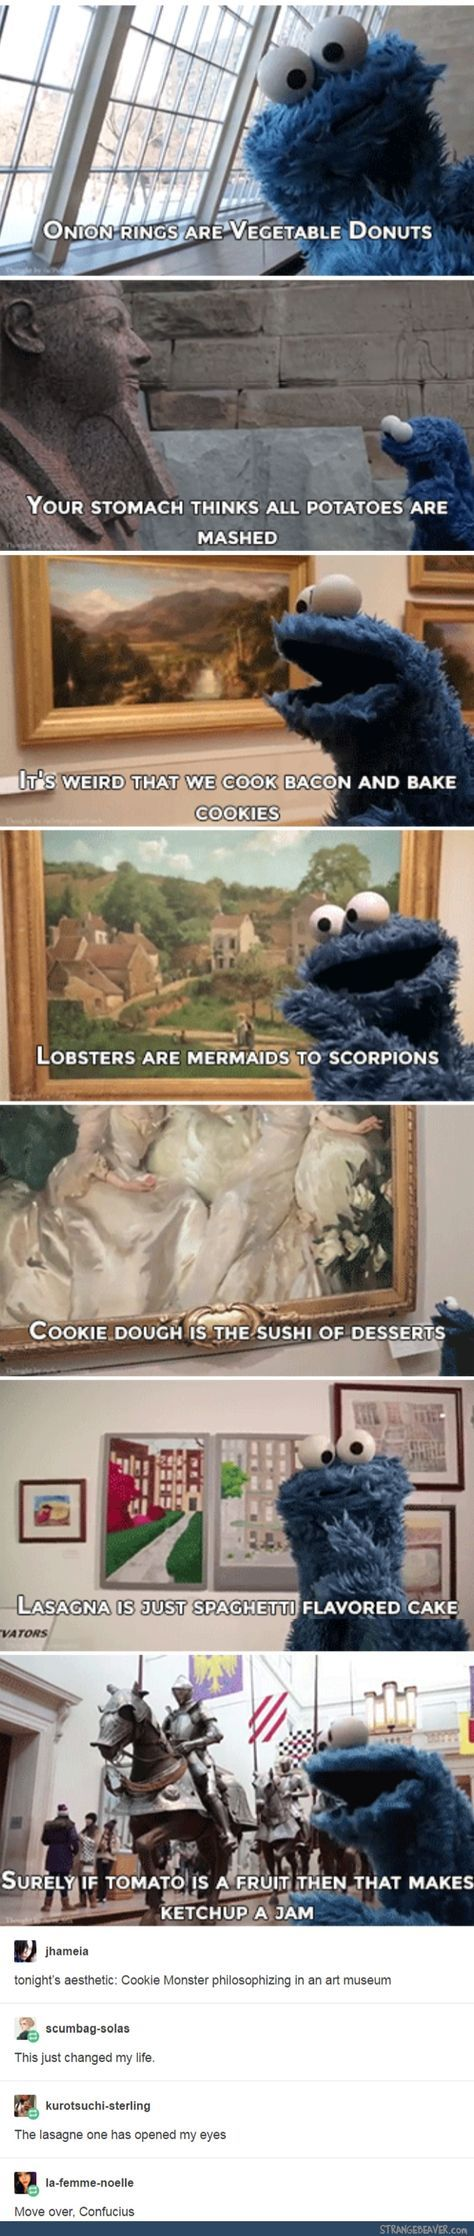 Cookie Monster is deep - Funny tumblr post